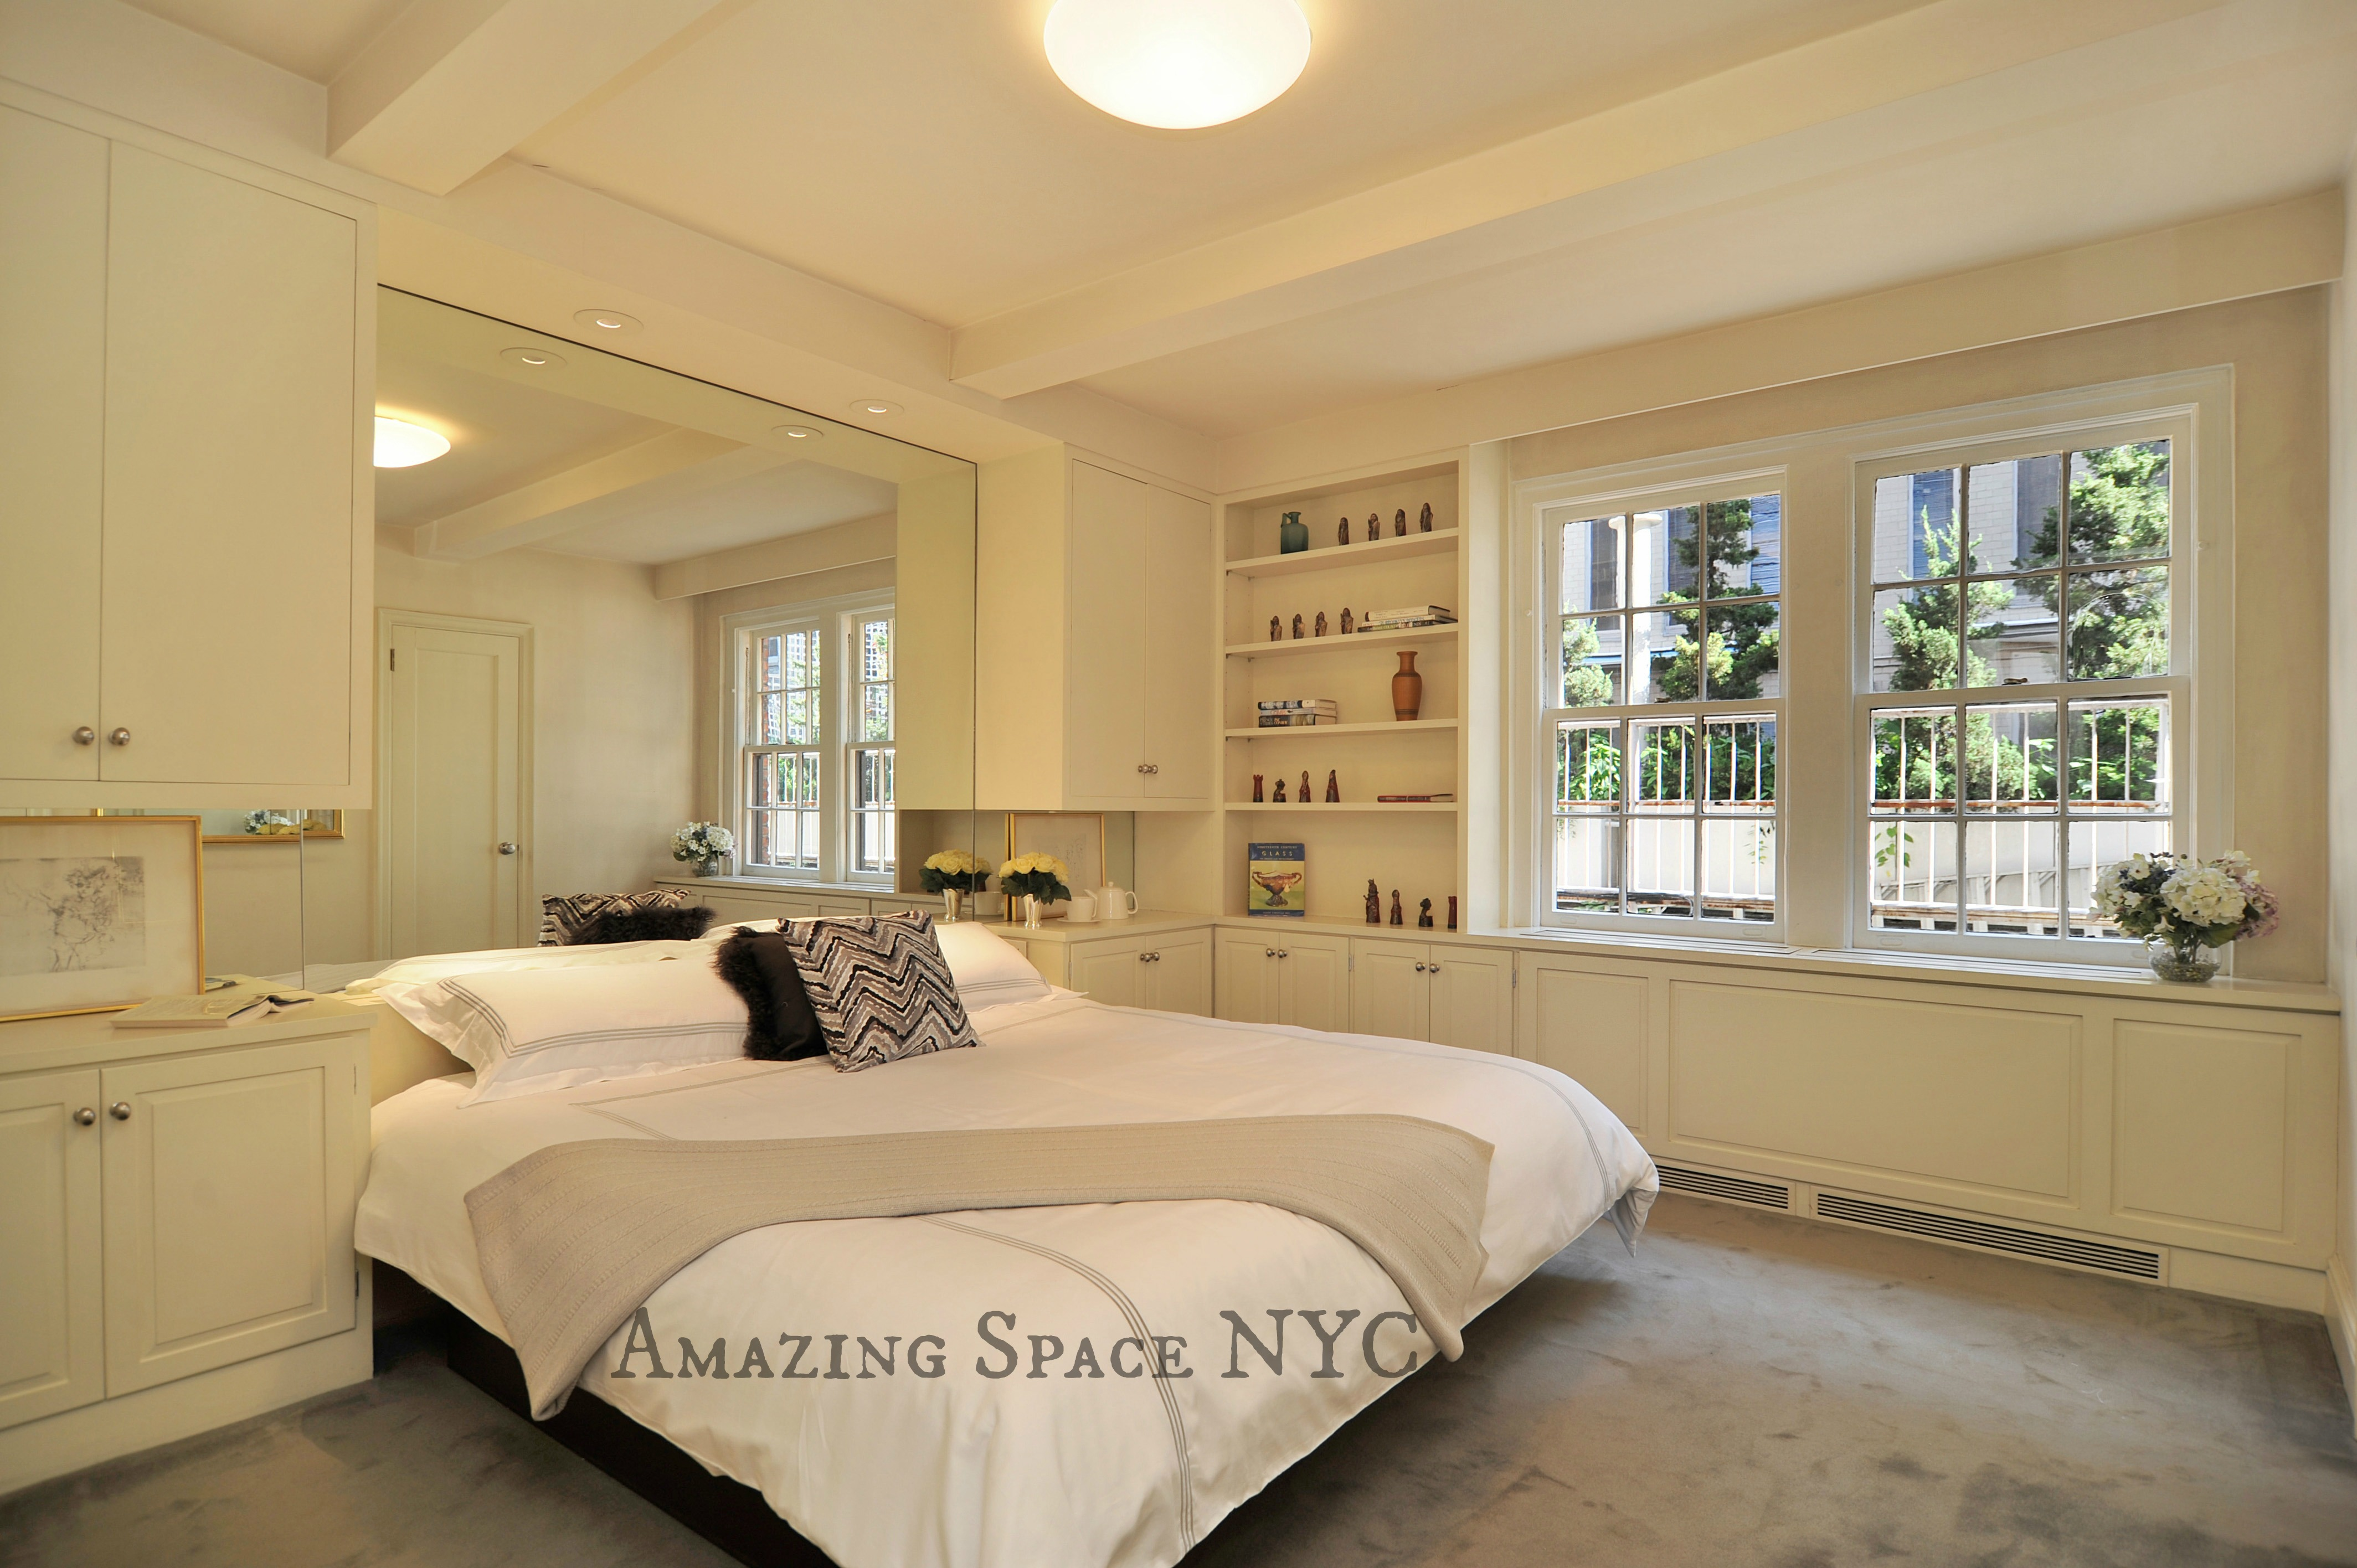 Home Staging New York. Master Bedroom Archives   Amazing Space NYC   Home Staging NYC